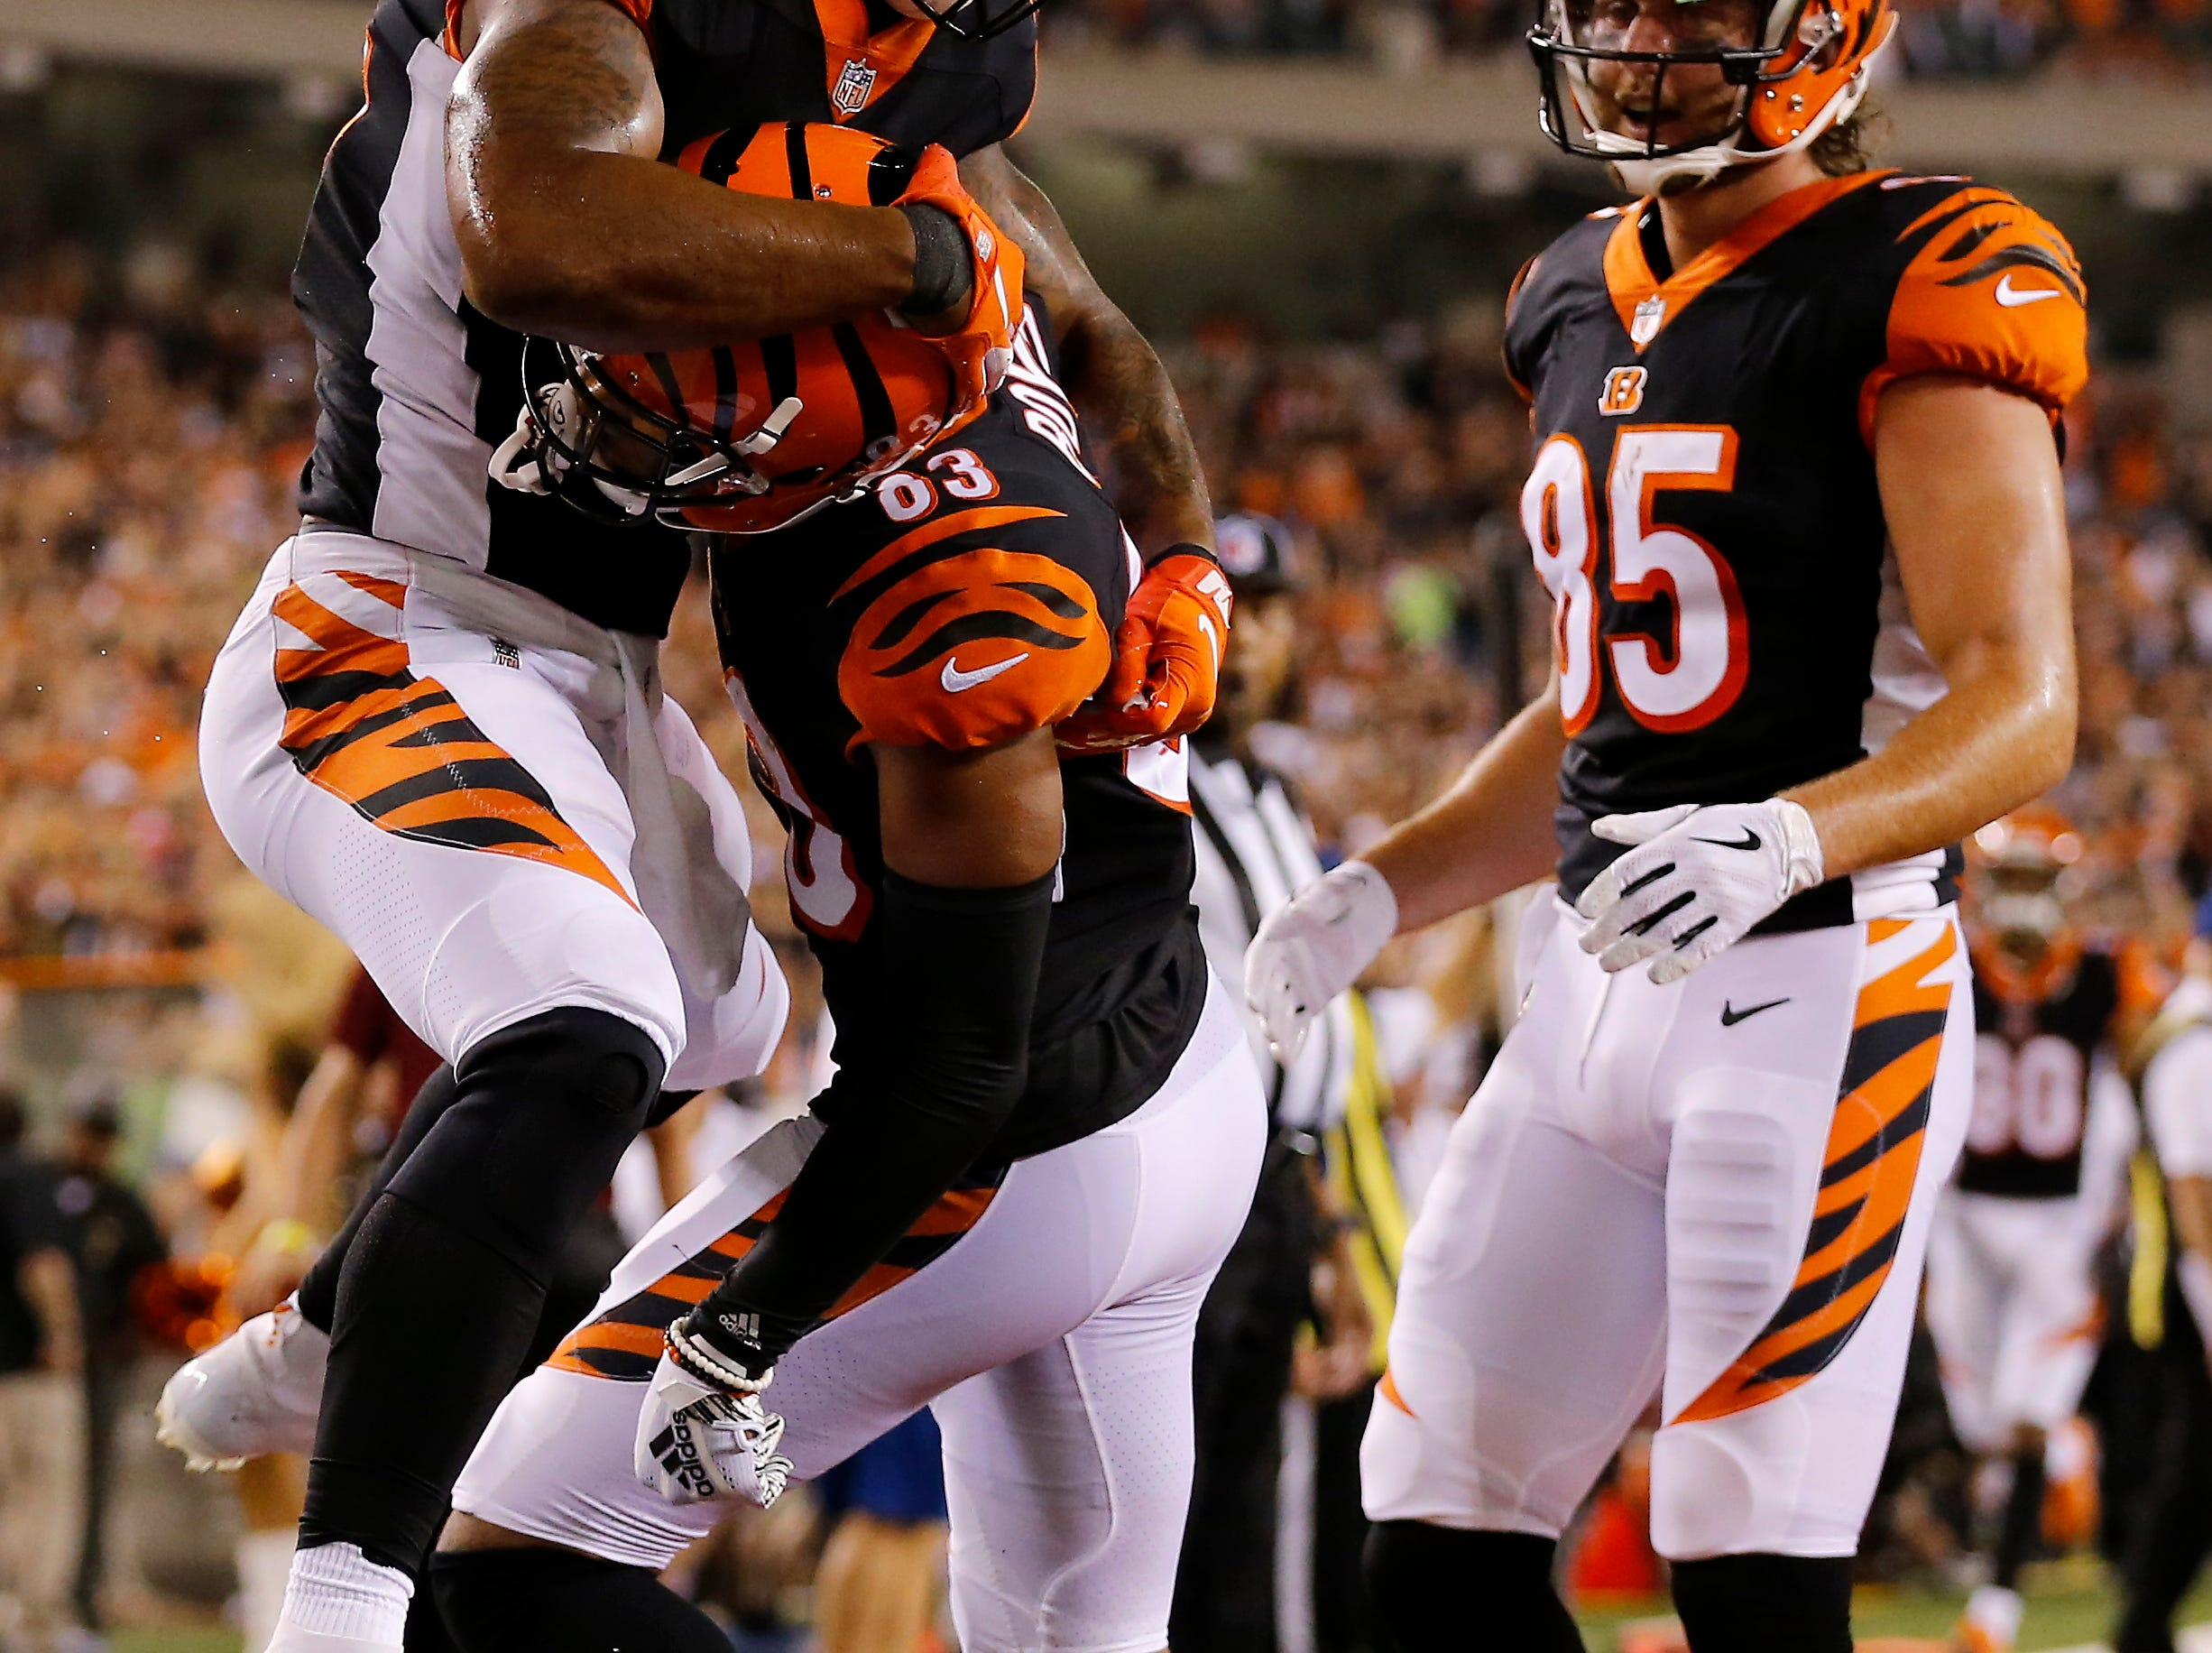 Cincinnati Bengals running back Joe Mixon (28) jumps on wide receiver Tyler Boyd (83) as they celebrate Boyd's touchdown in the second quarter of the NFL Week 2 game between the Cincinnati Bengals and the Baltimore Ravens at Paul Brown Stadium in downtown Cincinnati on Thursday, Sept. 13, 2018. The Bengals led 28-14 at halftime.